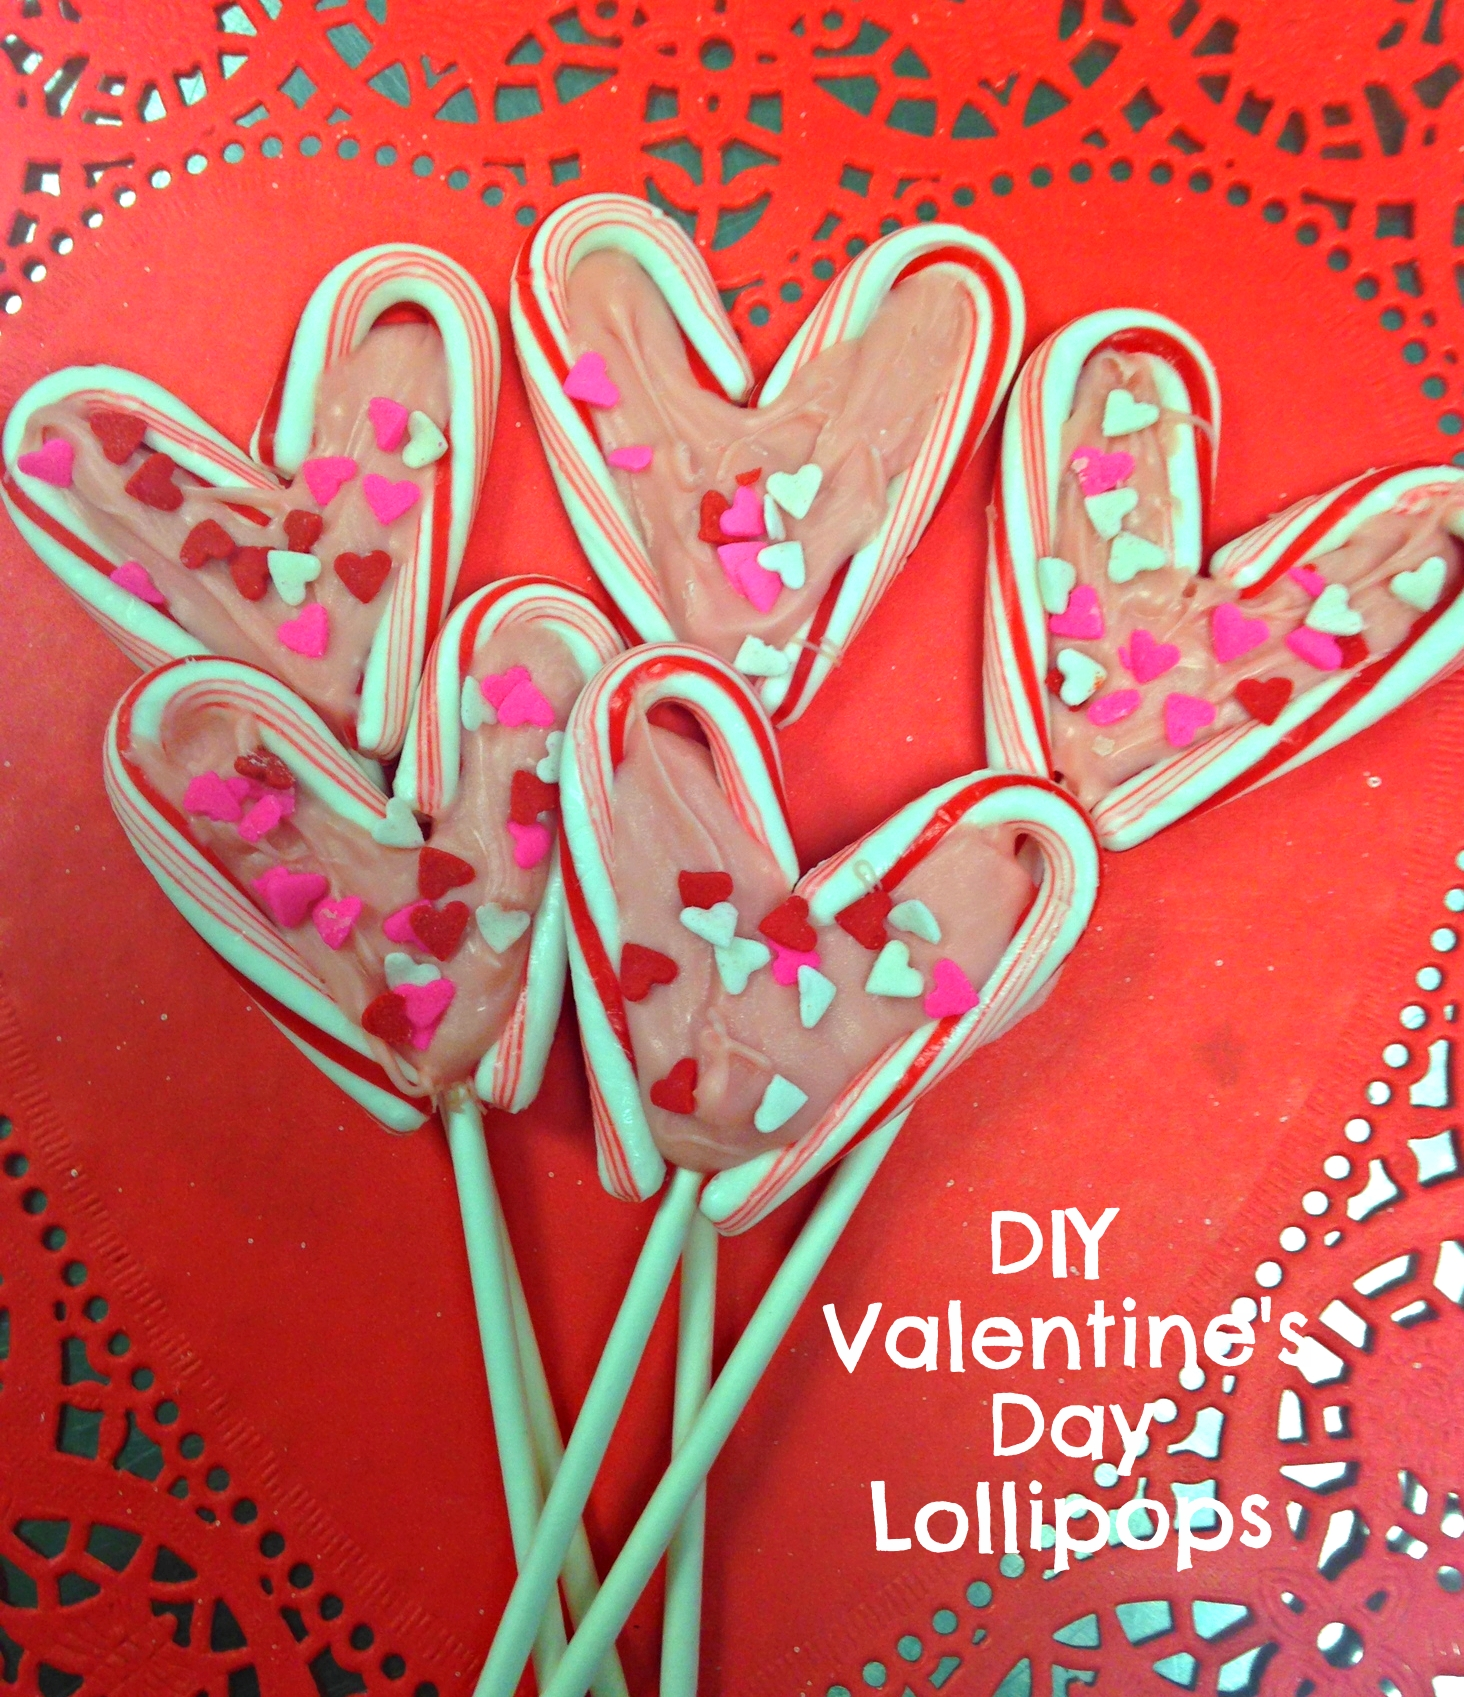 Homemade Valentine's Day Lollipops to make with your kiddos. Tutorial on ChefShayna.com